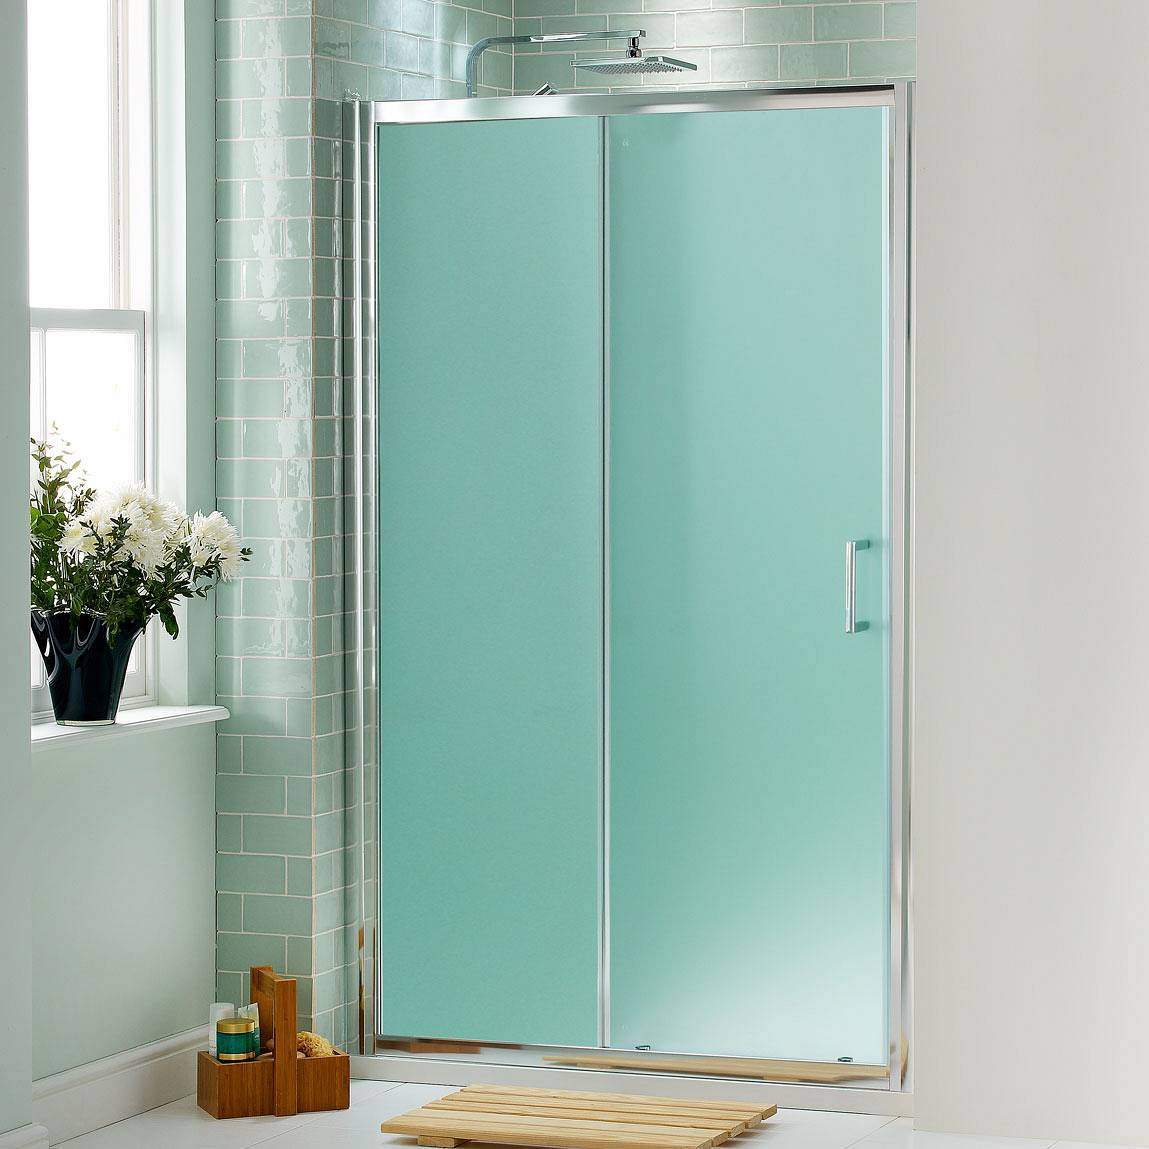 21 creative glass shower doors designs for bathrooms for Bathroom glass door designs